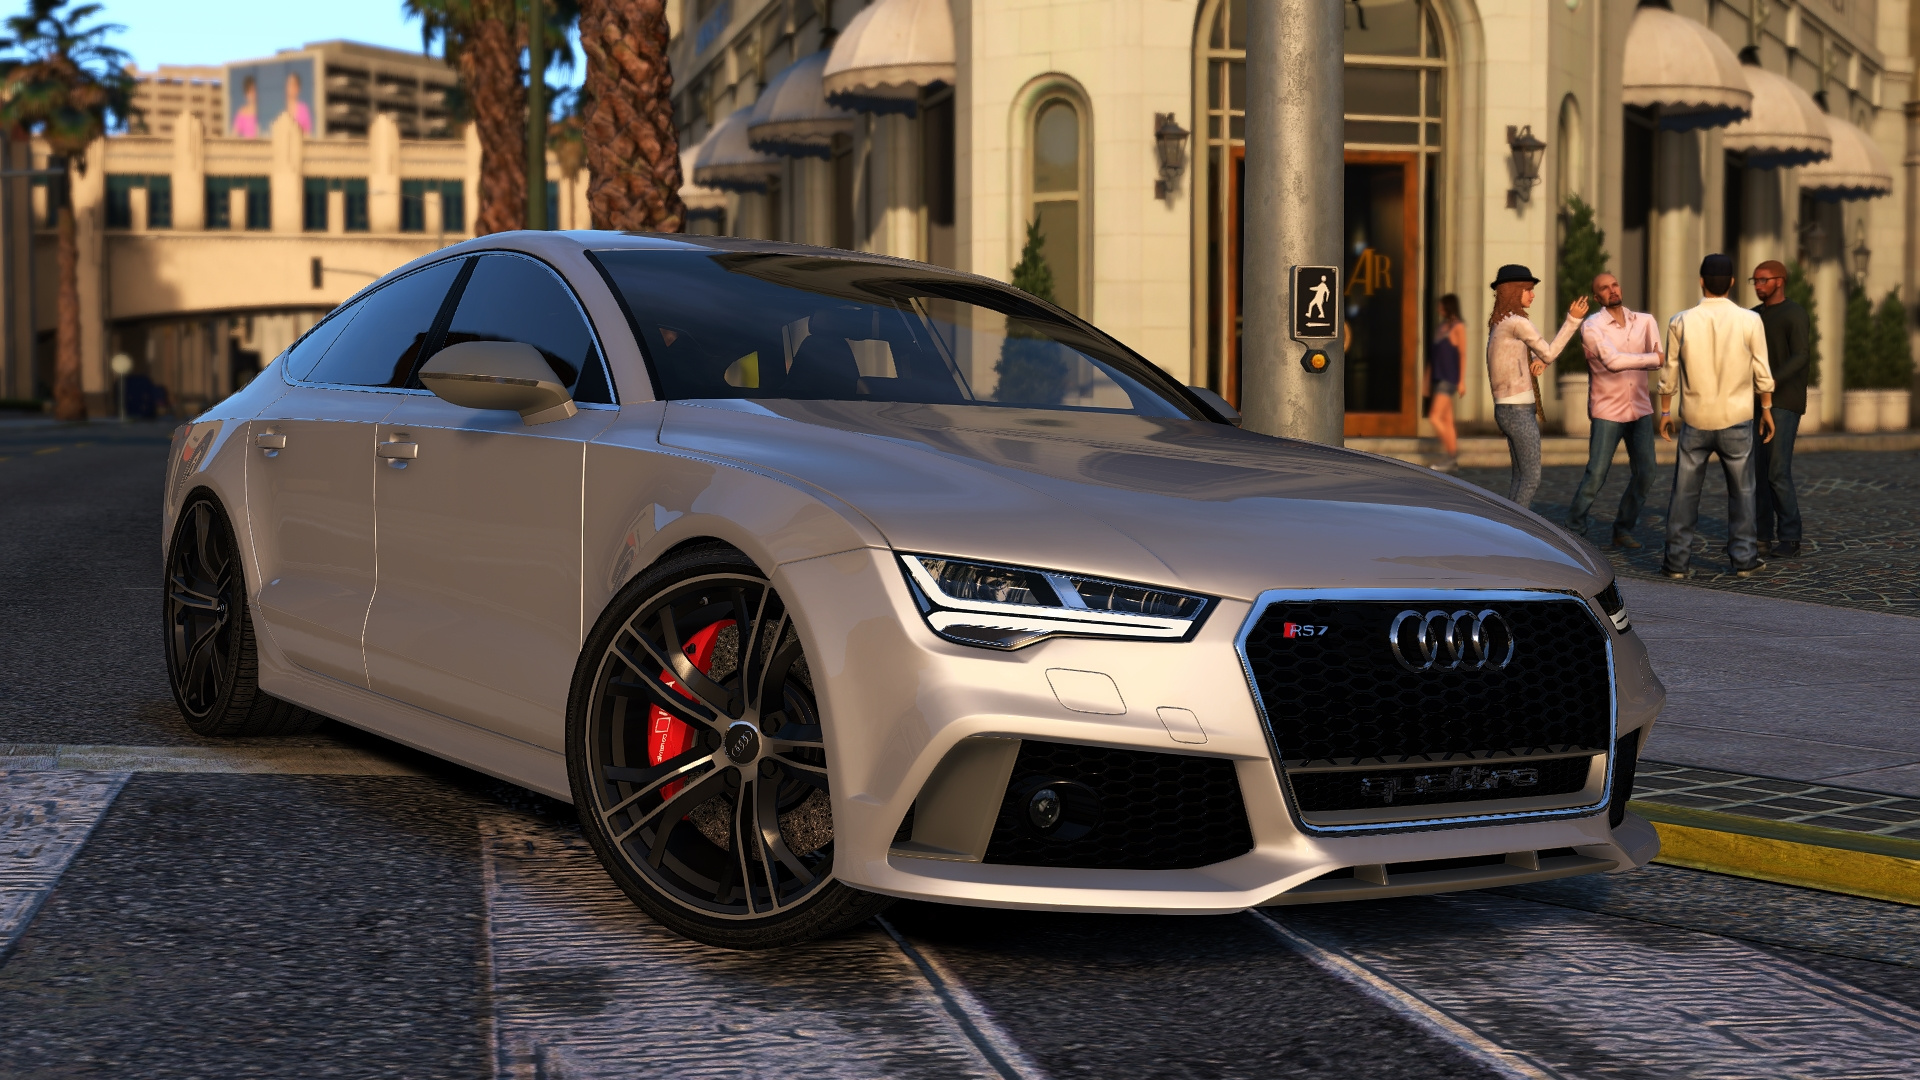 2015 Audi RS7 Sportback [Add-On / Rep] - GTA5-Mods.com